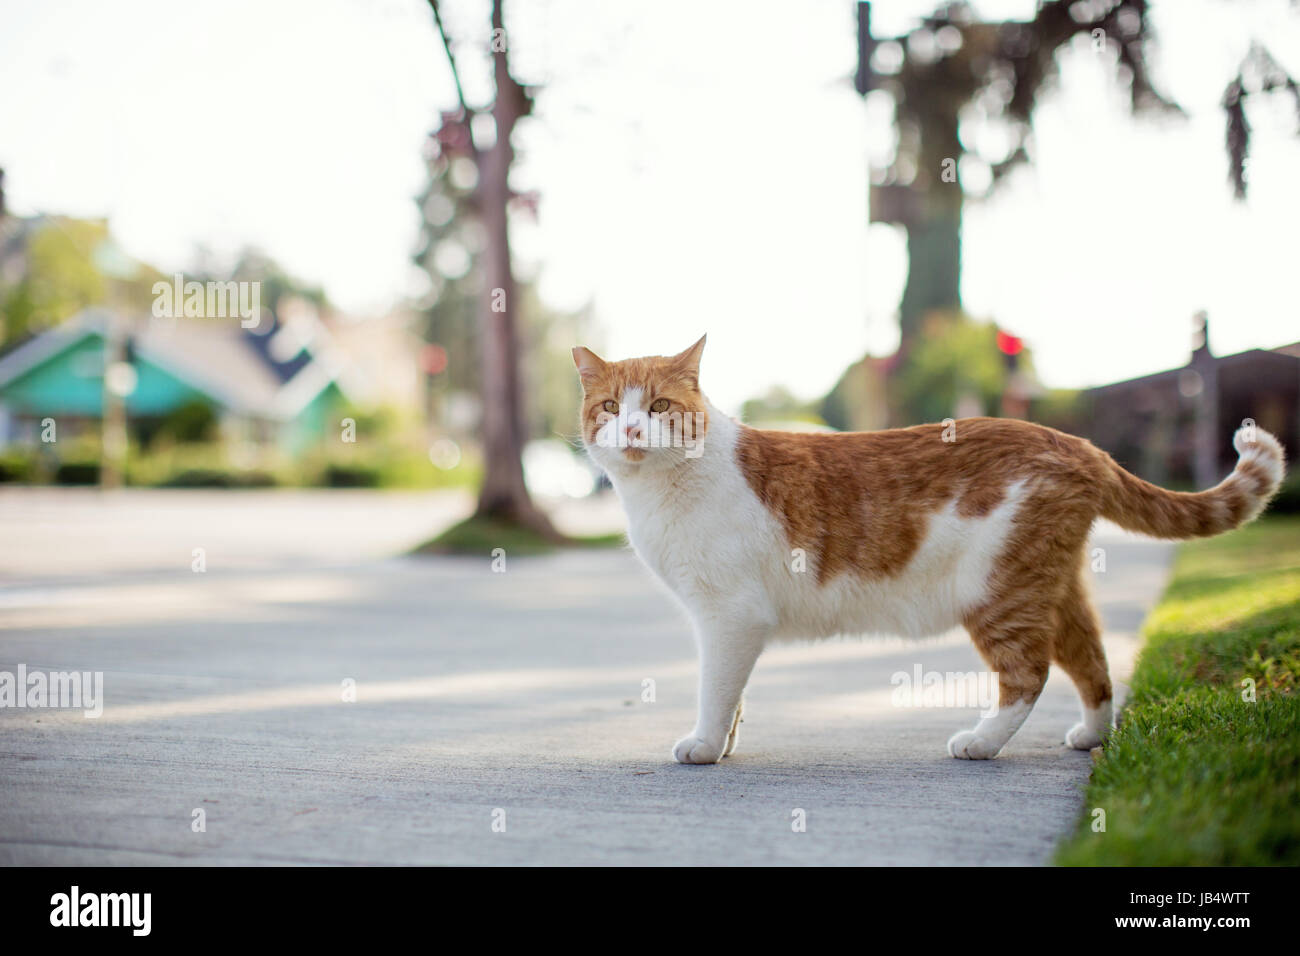 Orange and white tabby cat standing on a sidewalk in a residential ...